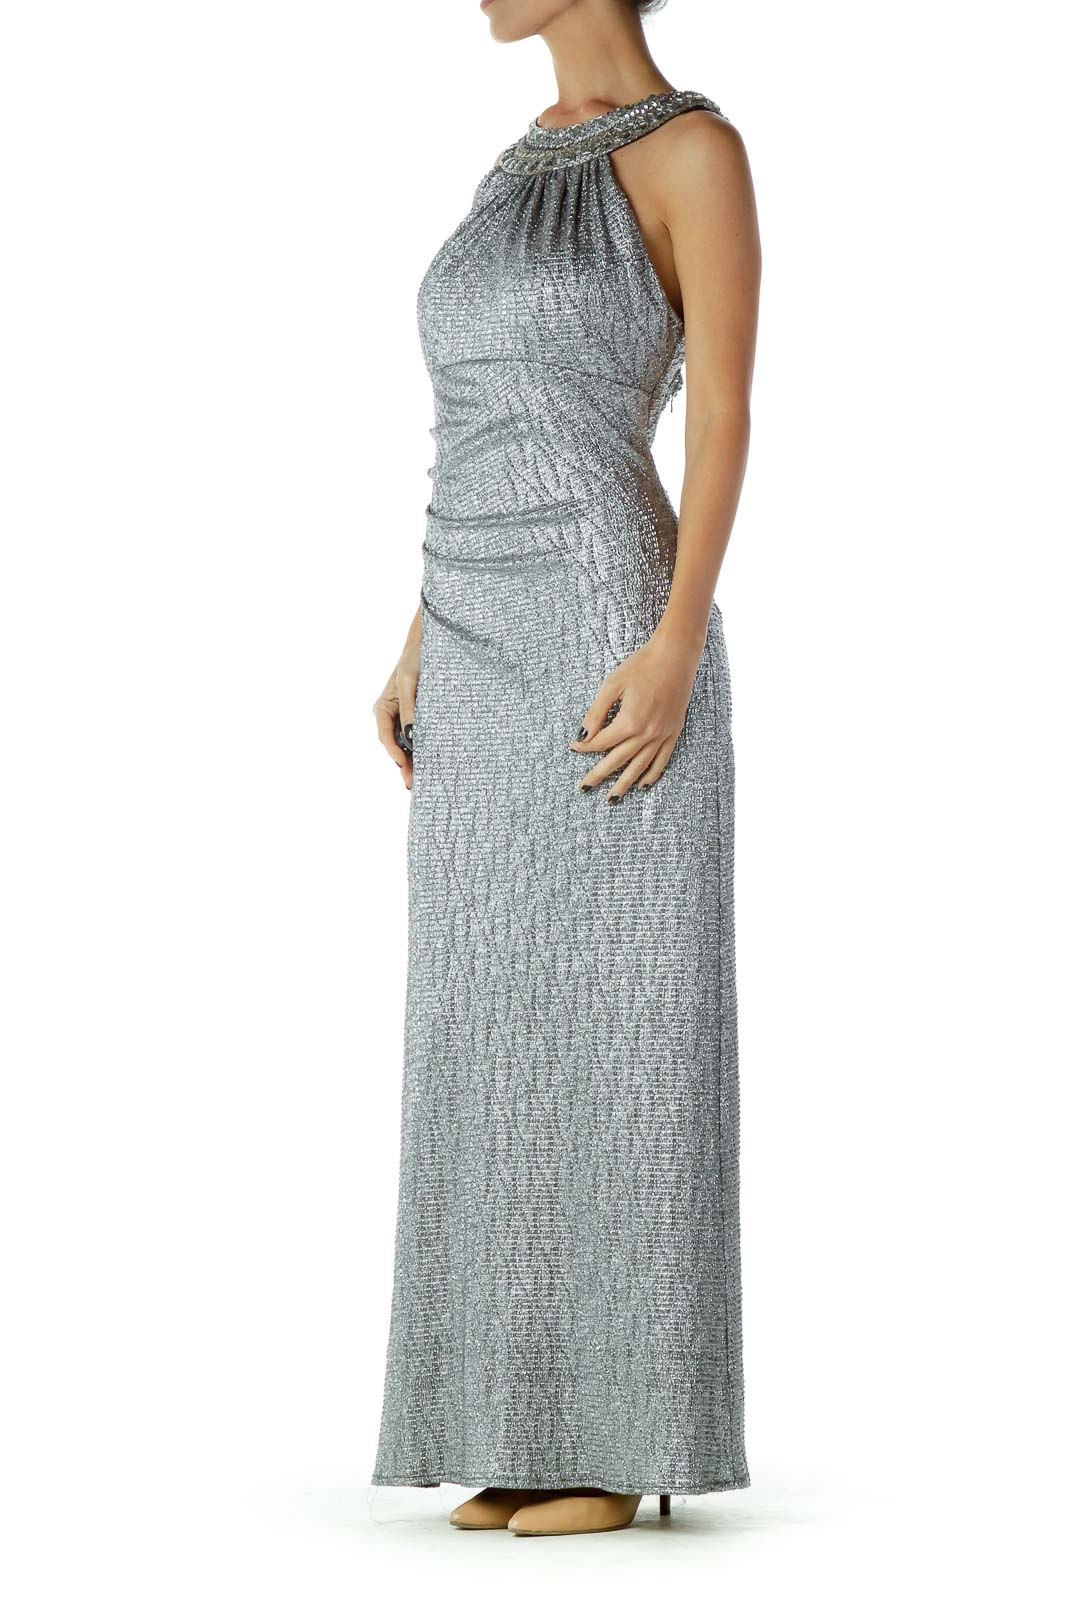 Silver Metallic Gown with Beaded Neckline